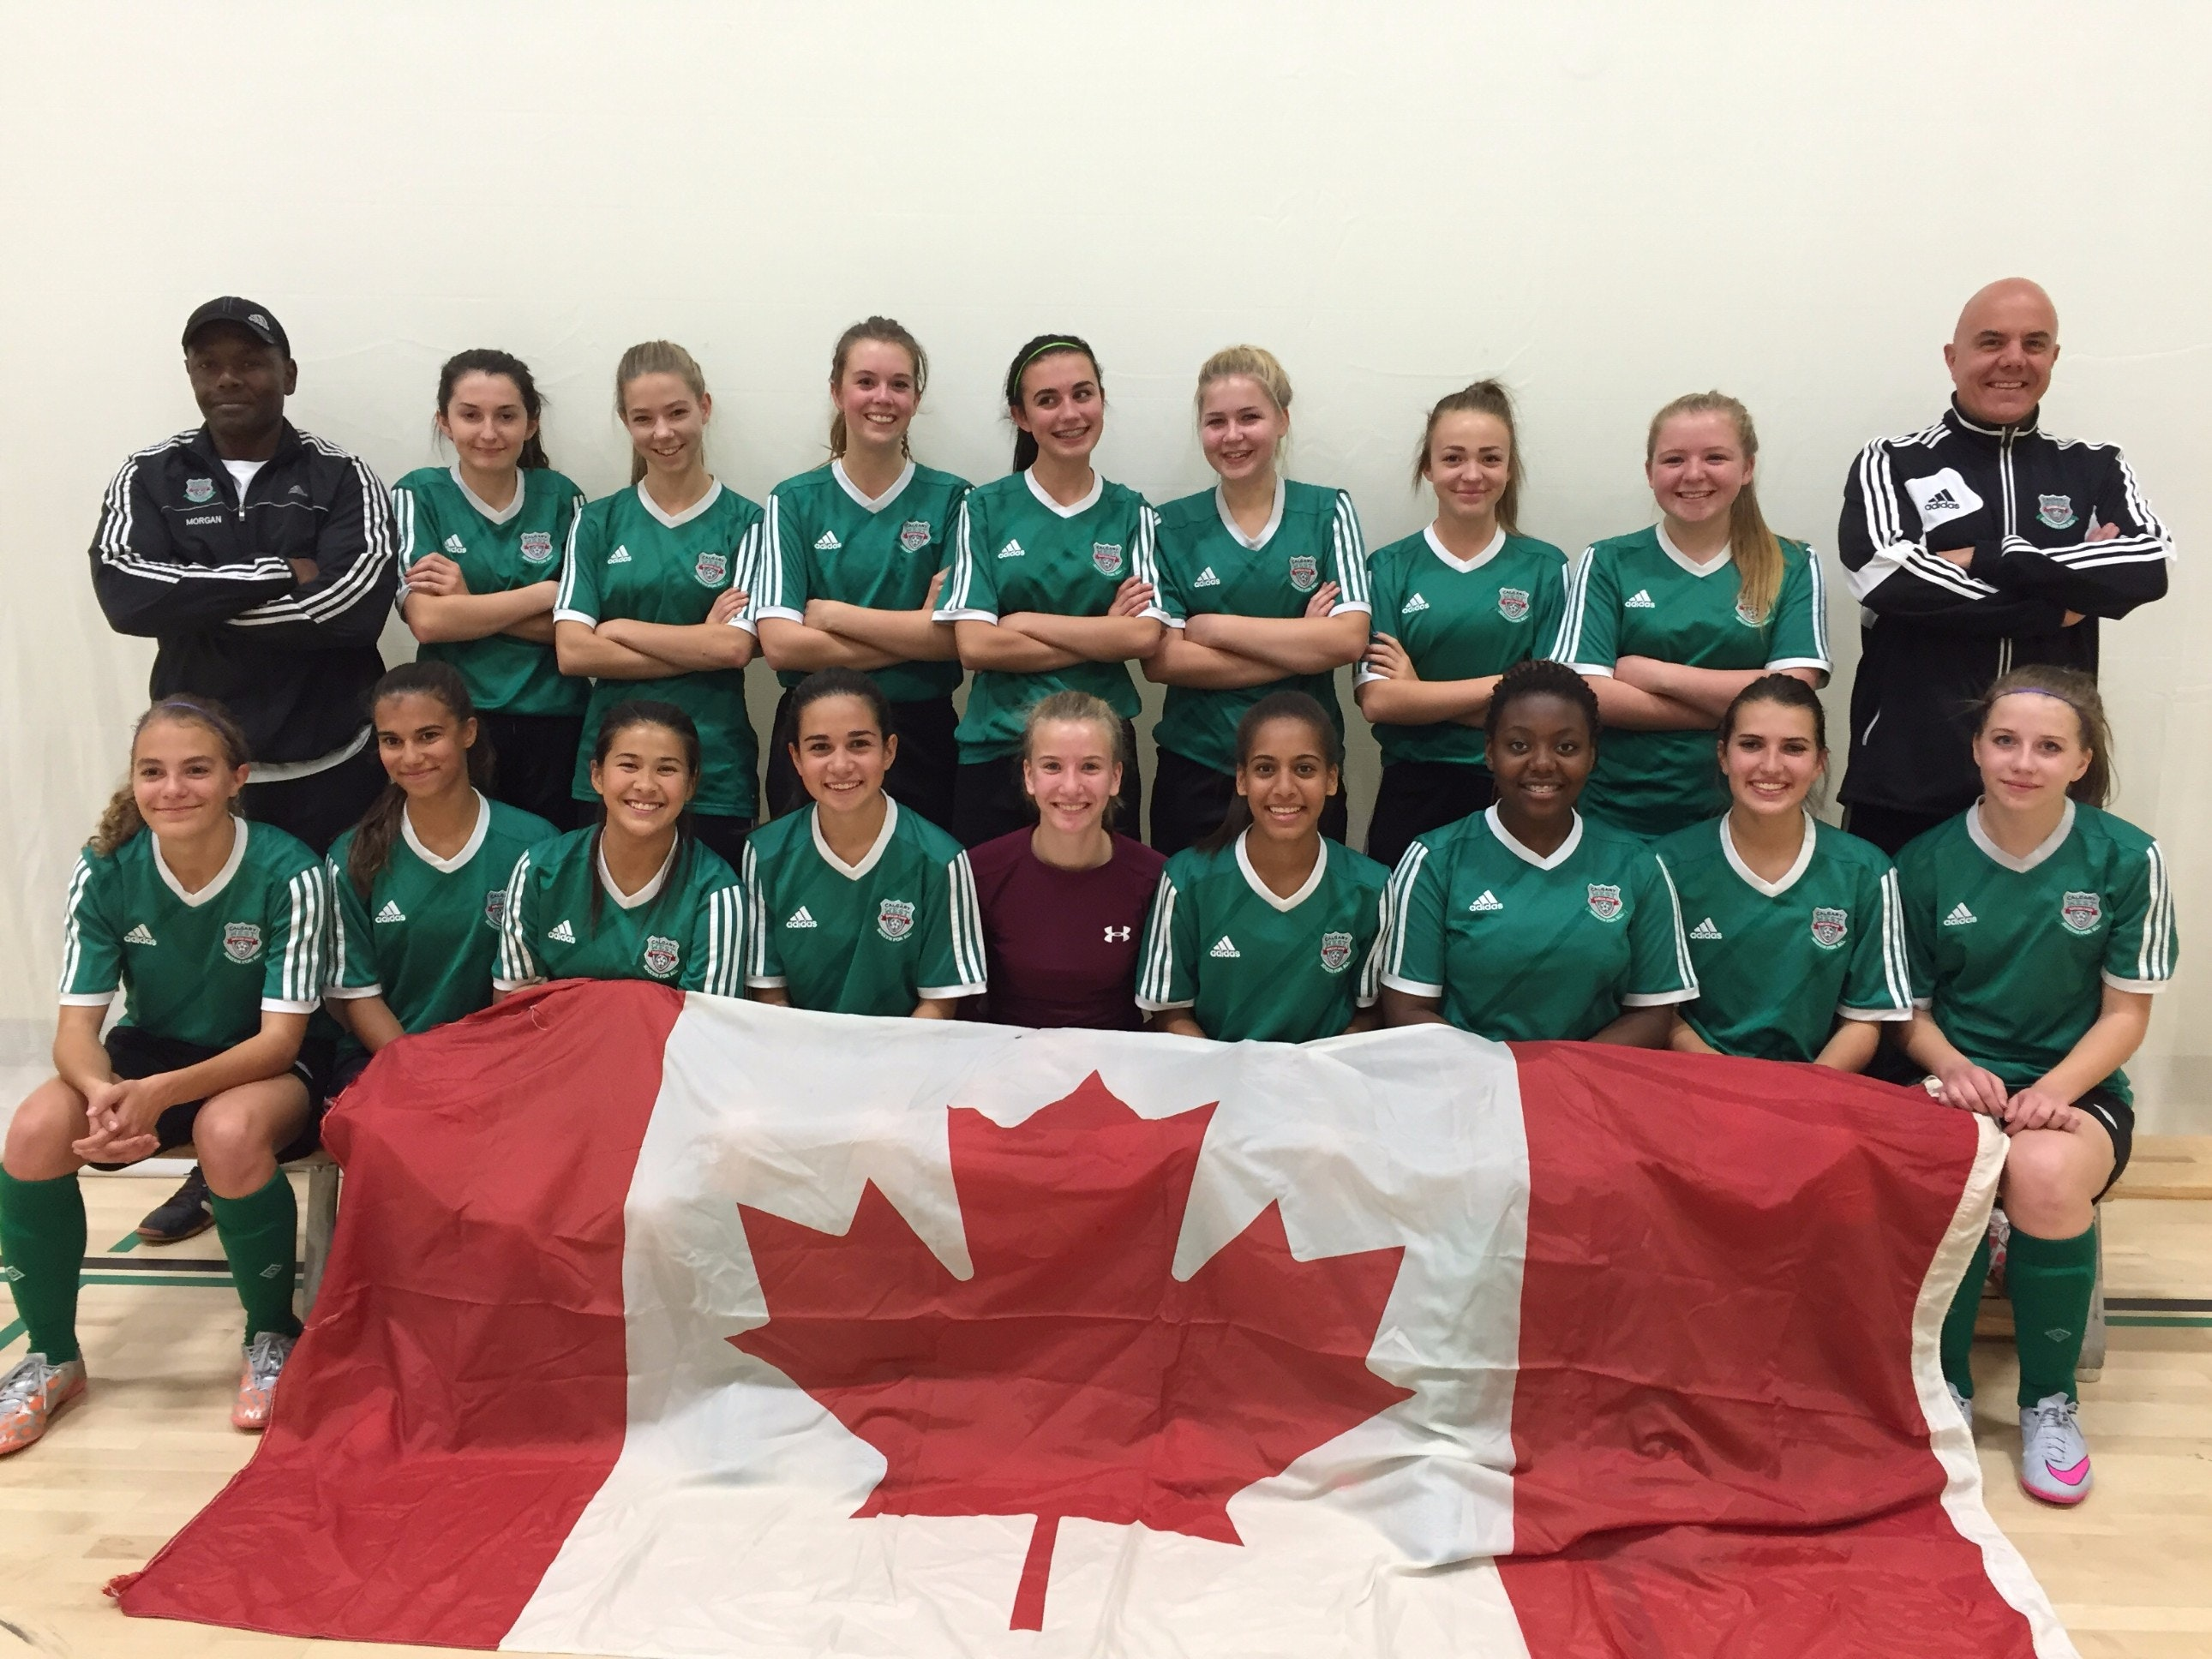 Calgary West SC Team Chelsea - Gothia Cup Tournament in Sweden July 2016